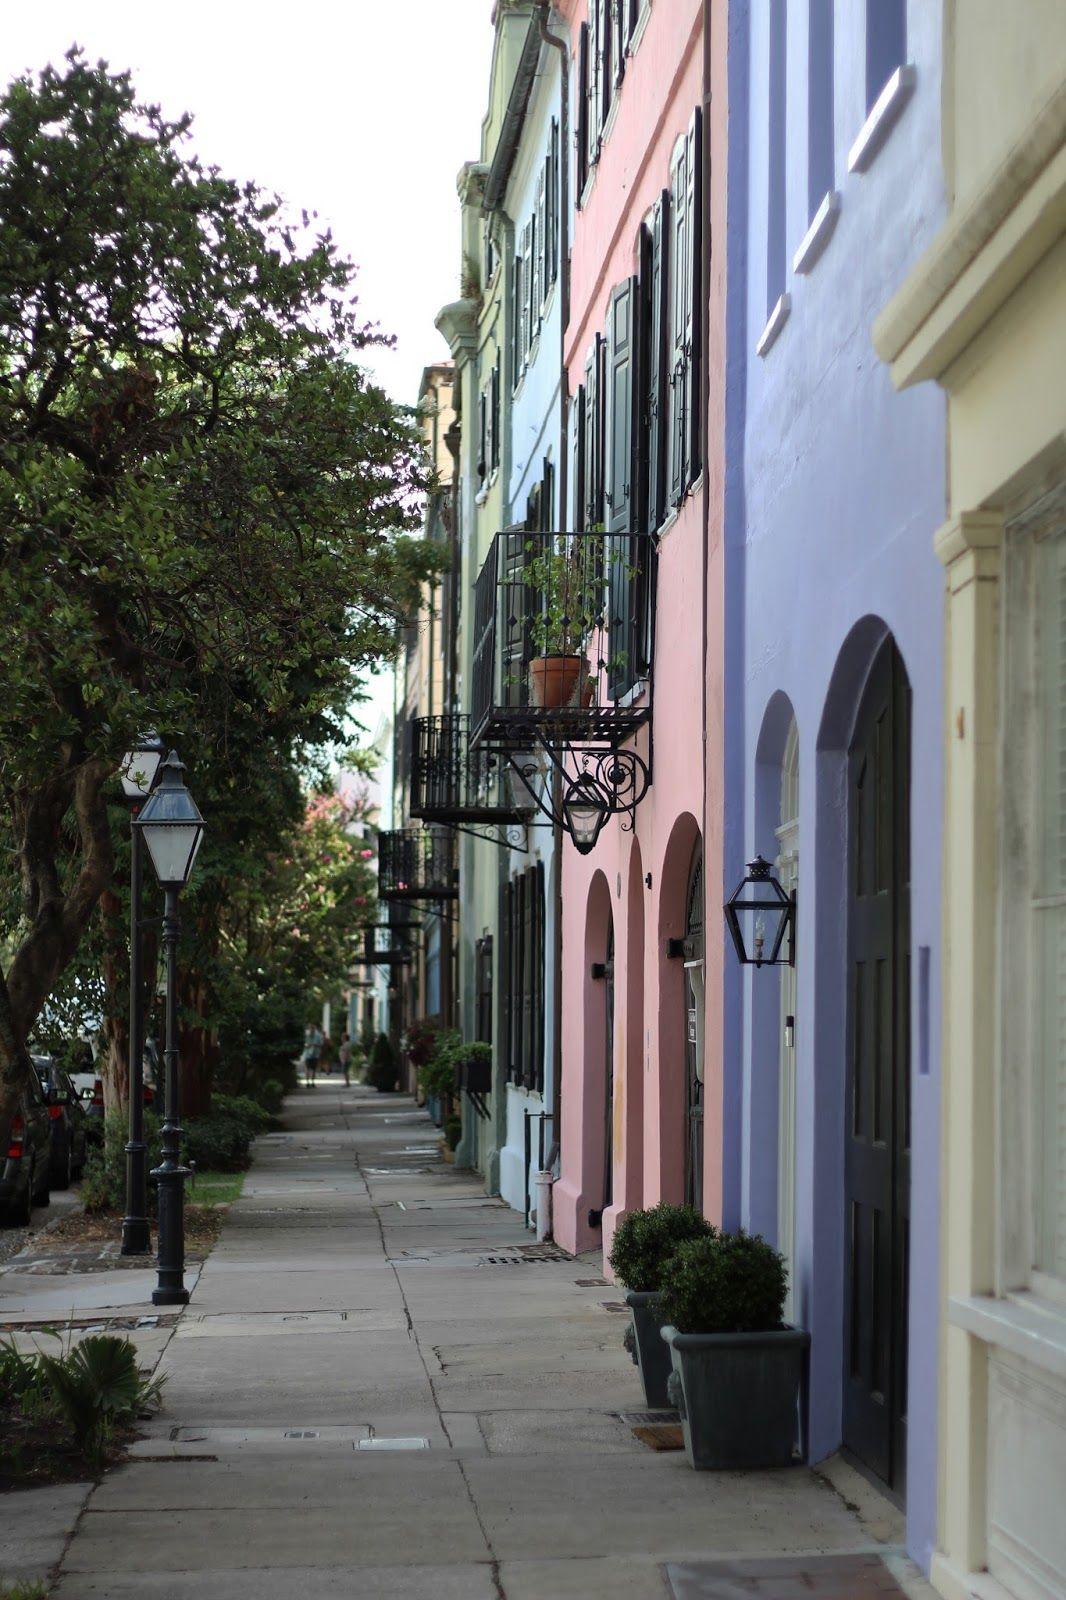 Top 15 Free Things to Do in Charleston: Save while you travel and explore these top free things to do in Charleston, SC.